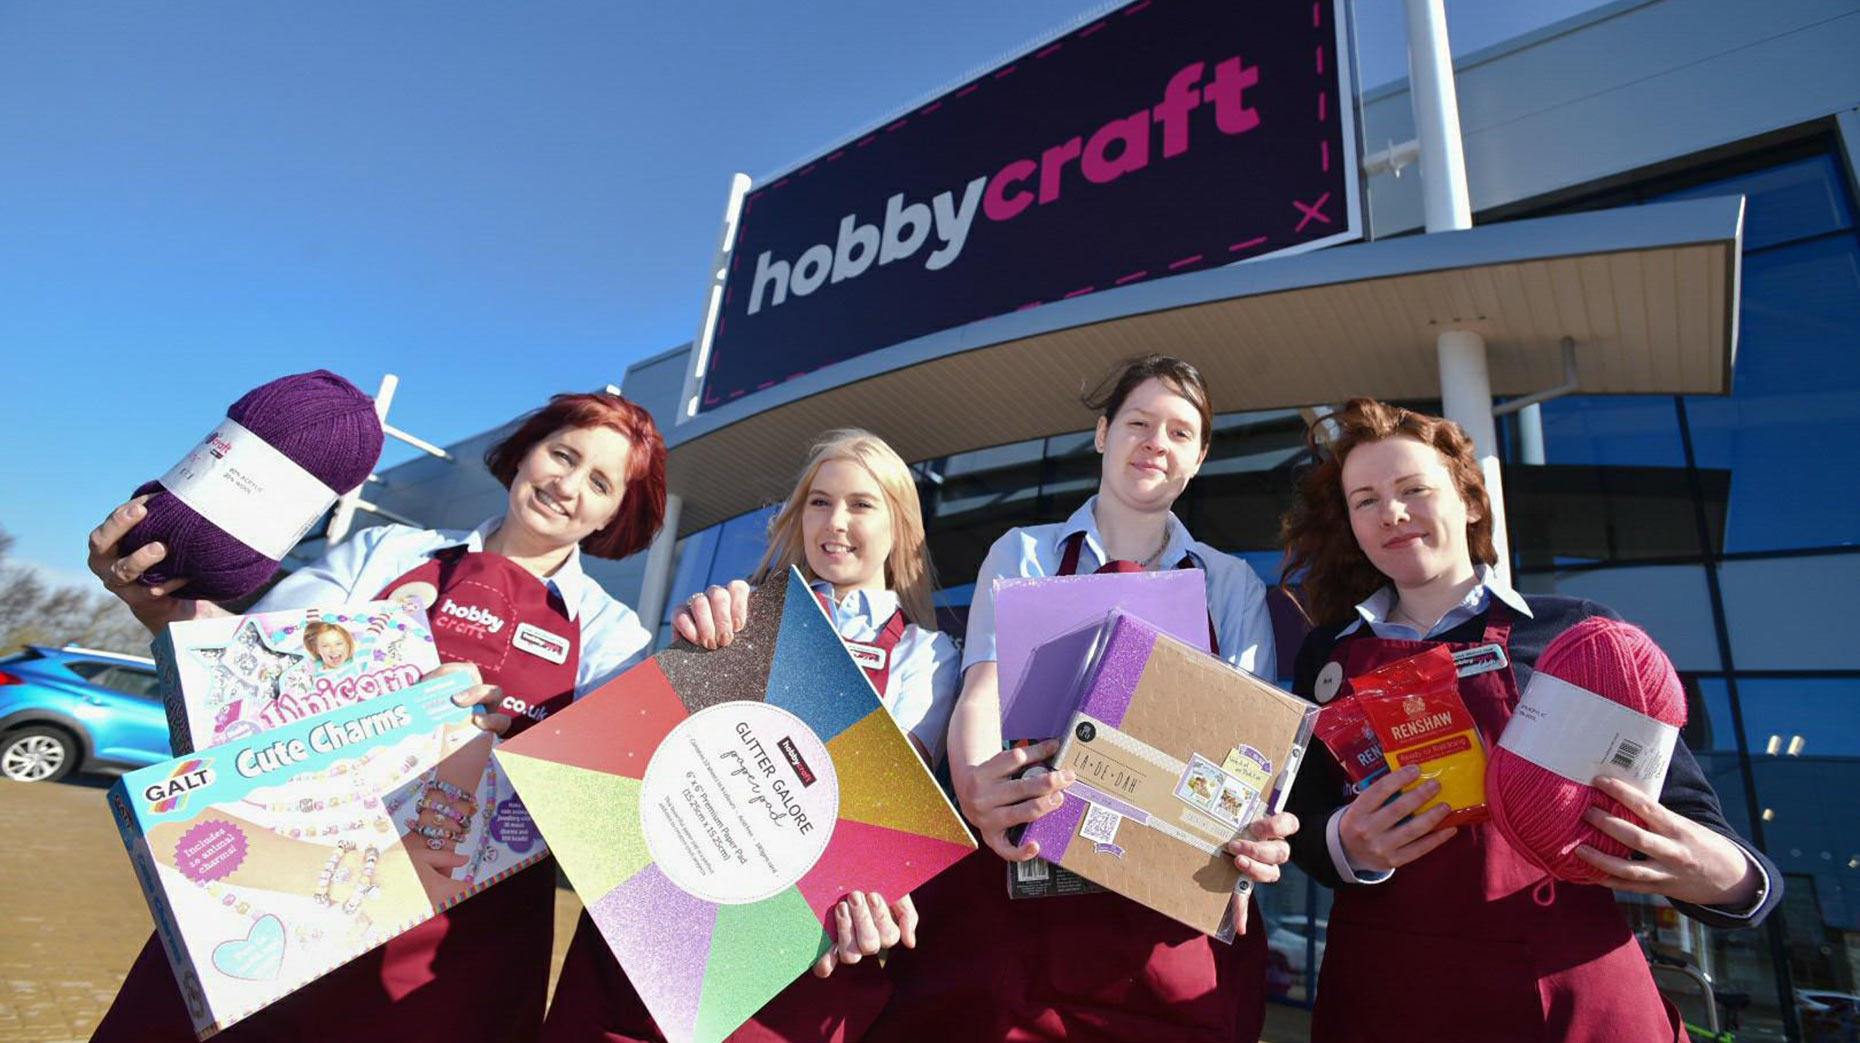 You Wool Love It Lincoln Gets Its First Hobbycraft